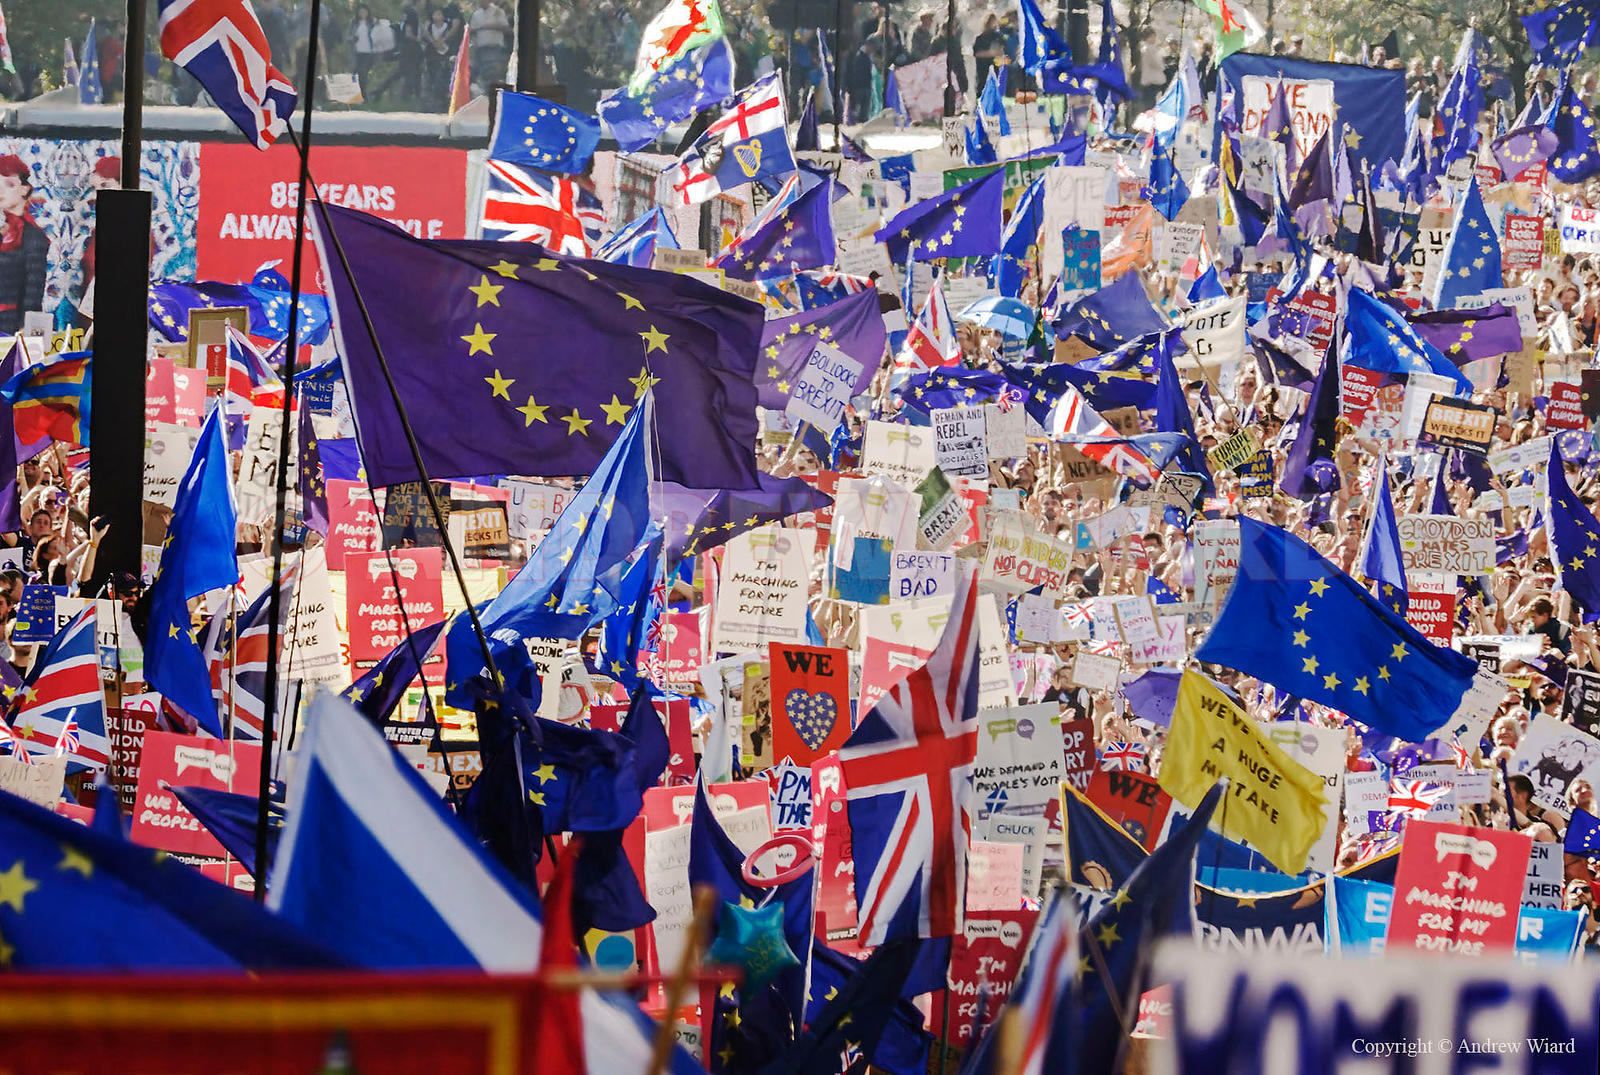 England, UK . 20.10.2018. London . People's Vote march hundreds of thousands calling for a referendum on the final Brexit deal.